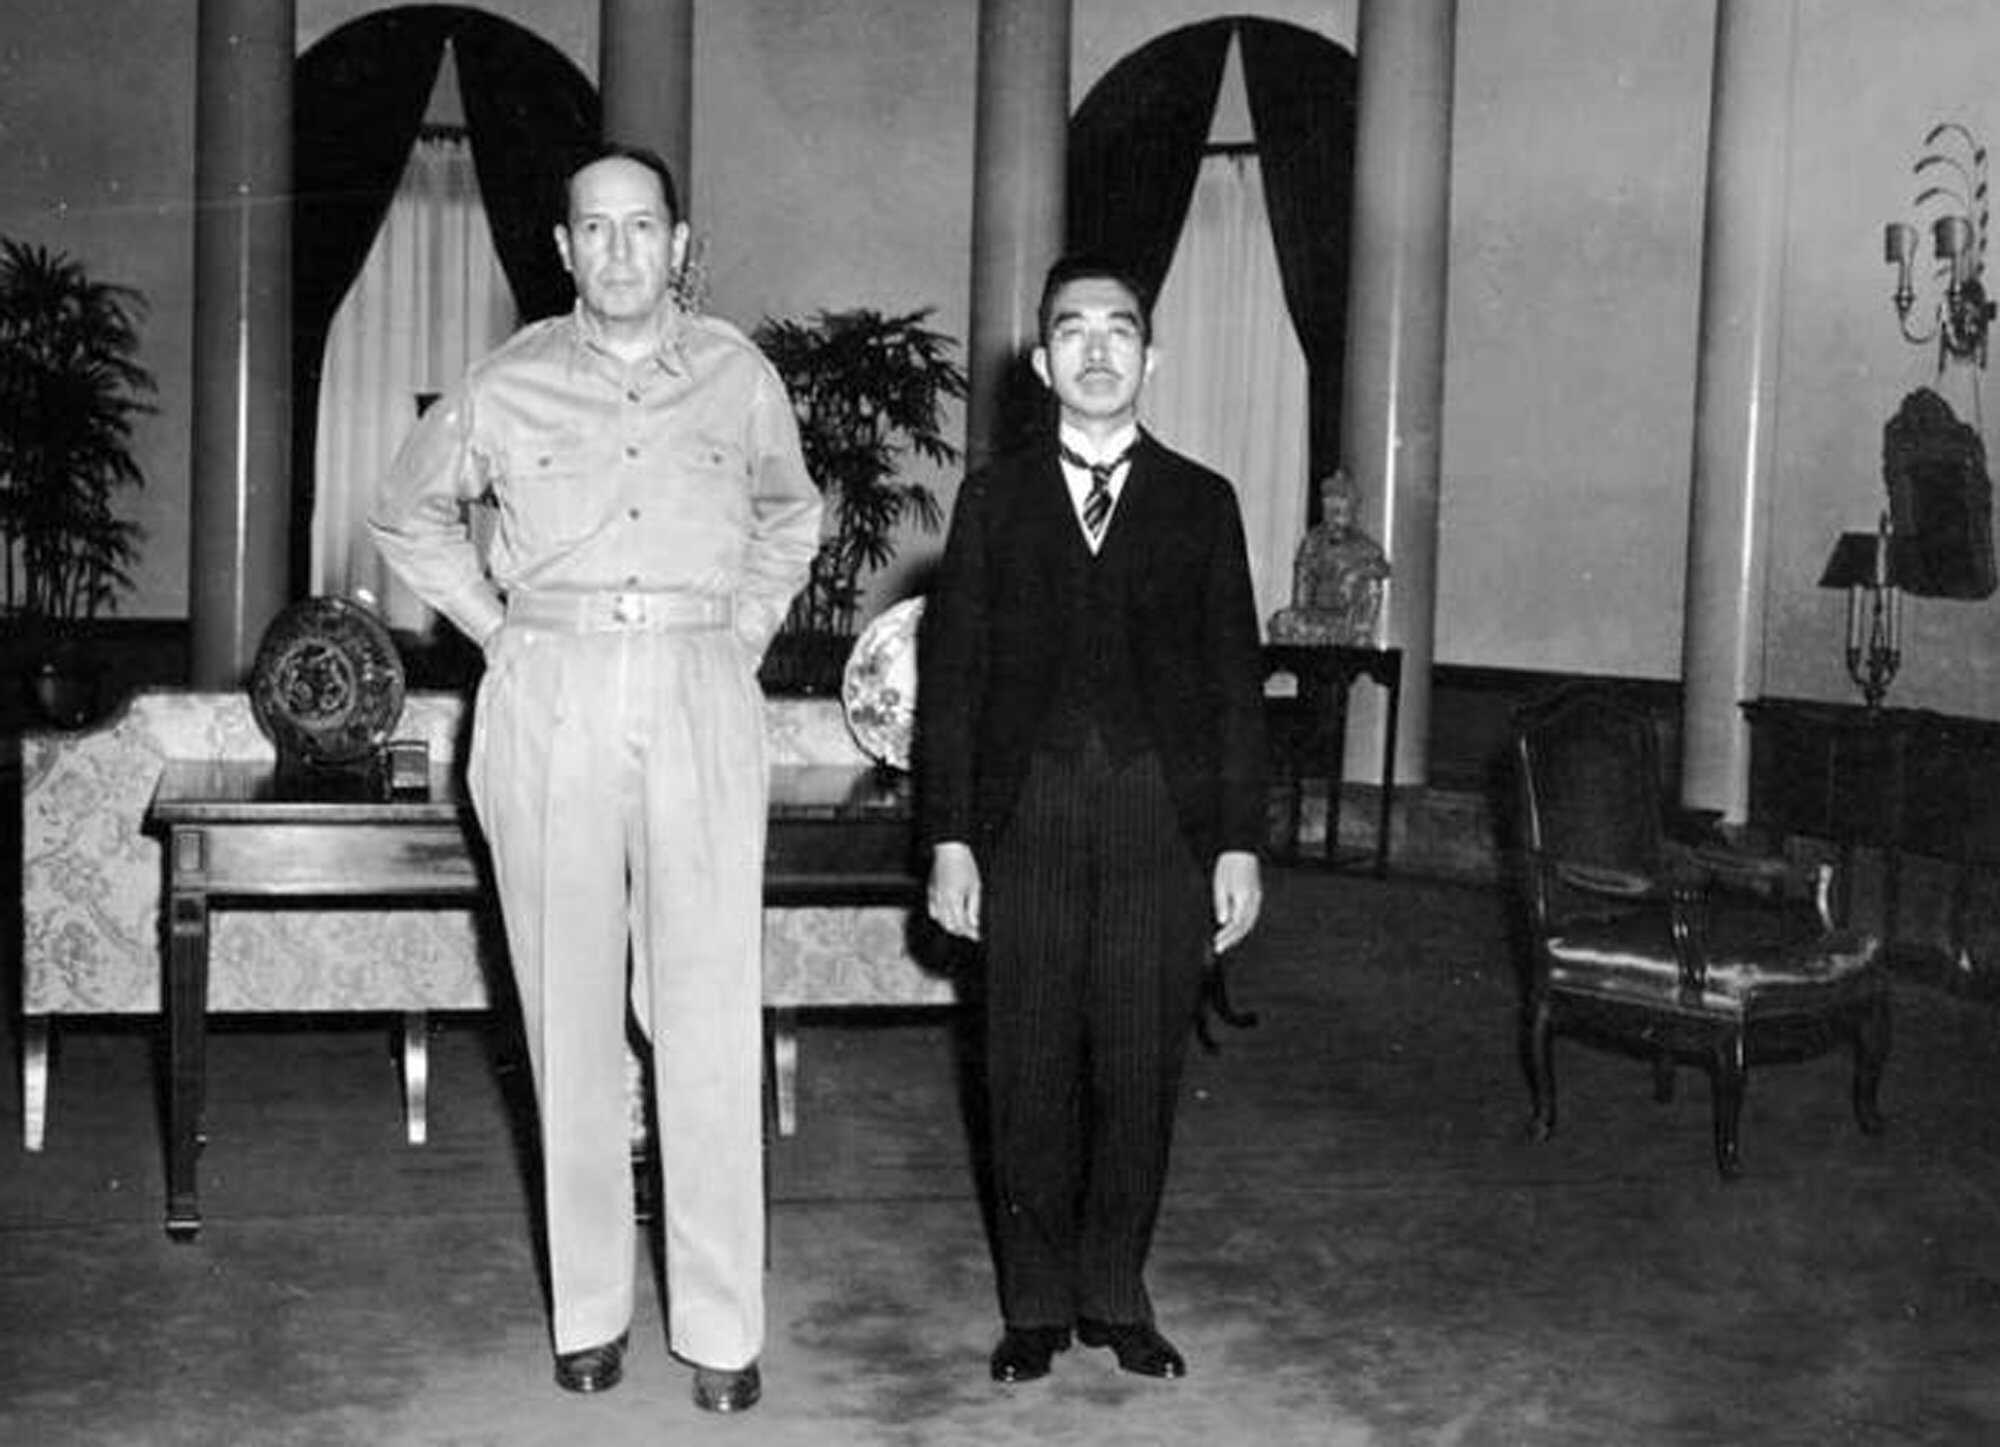 Macarthur-Hirohito-Japan-Occupation.jpg